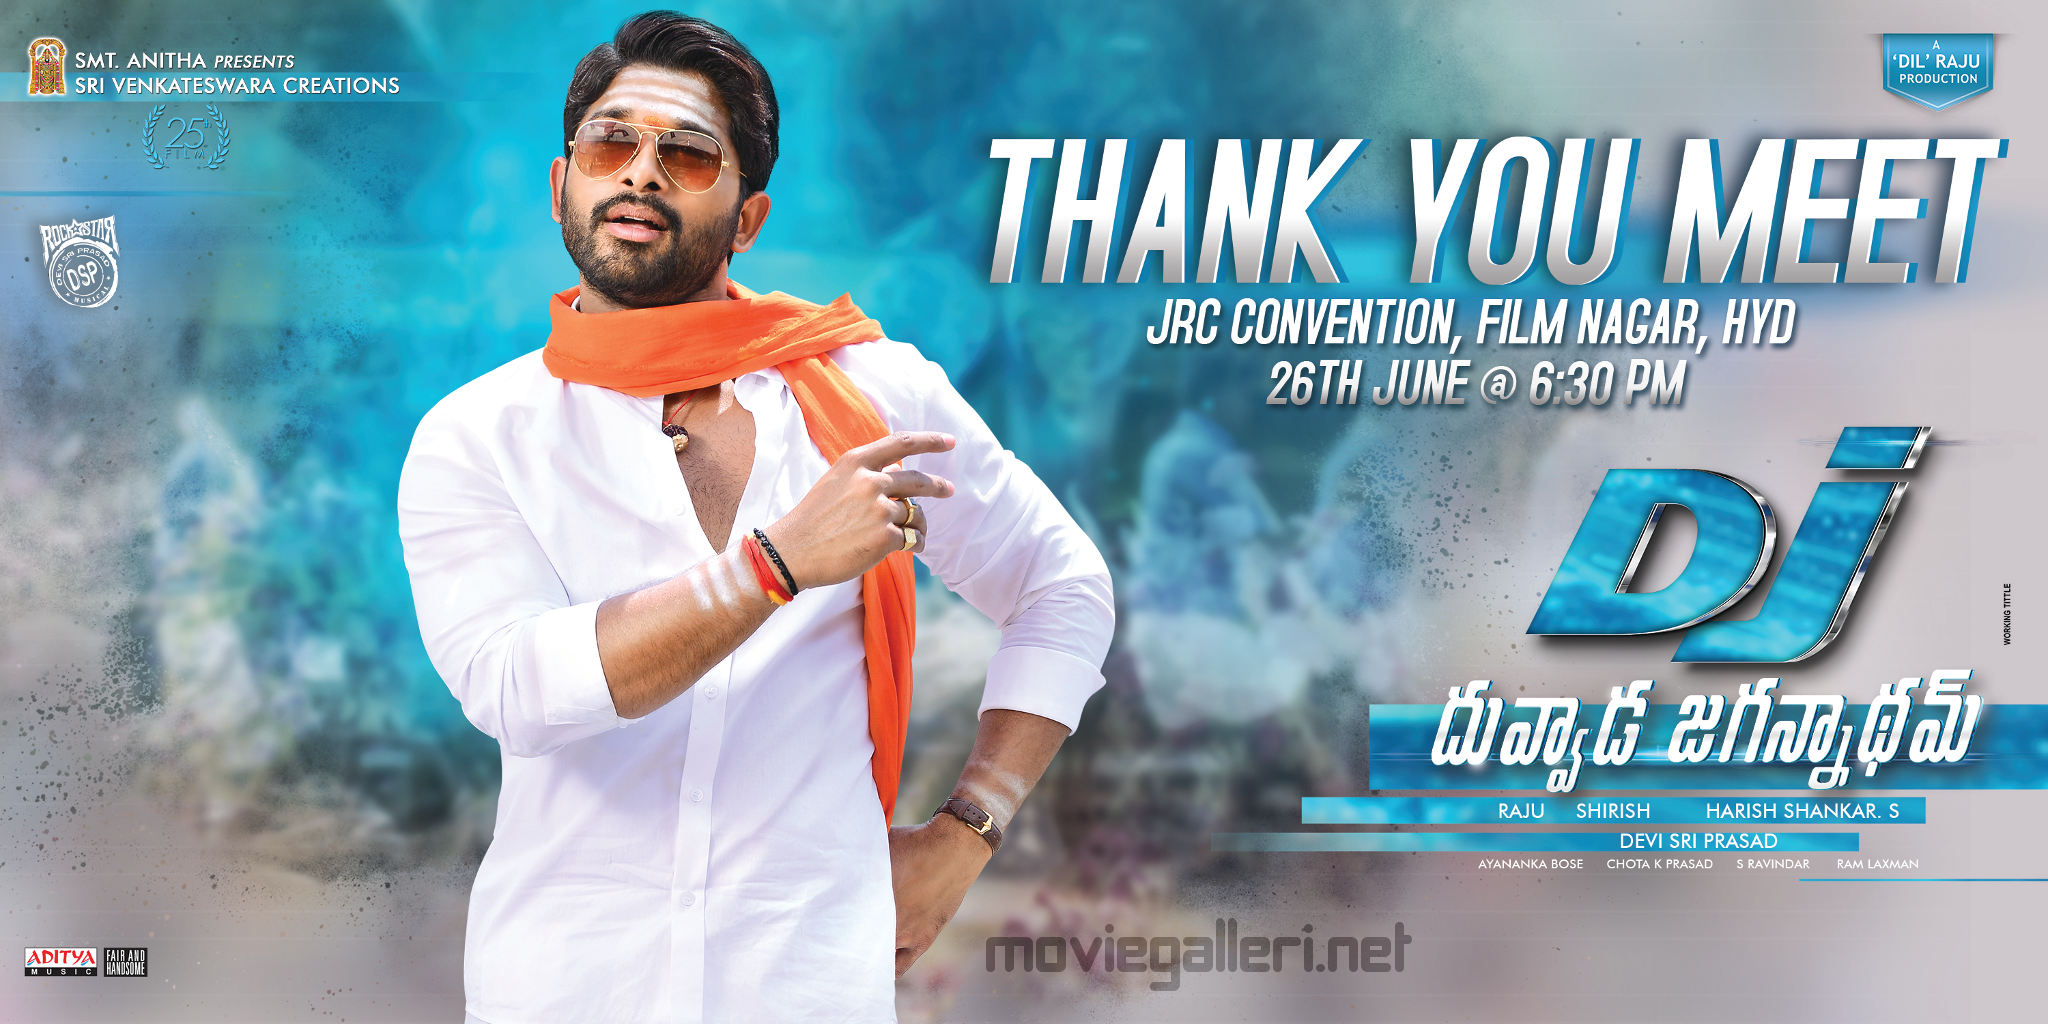 Allu Arjun DJ Duvvada Jagannadham thank you meet on 26 June Poster